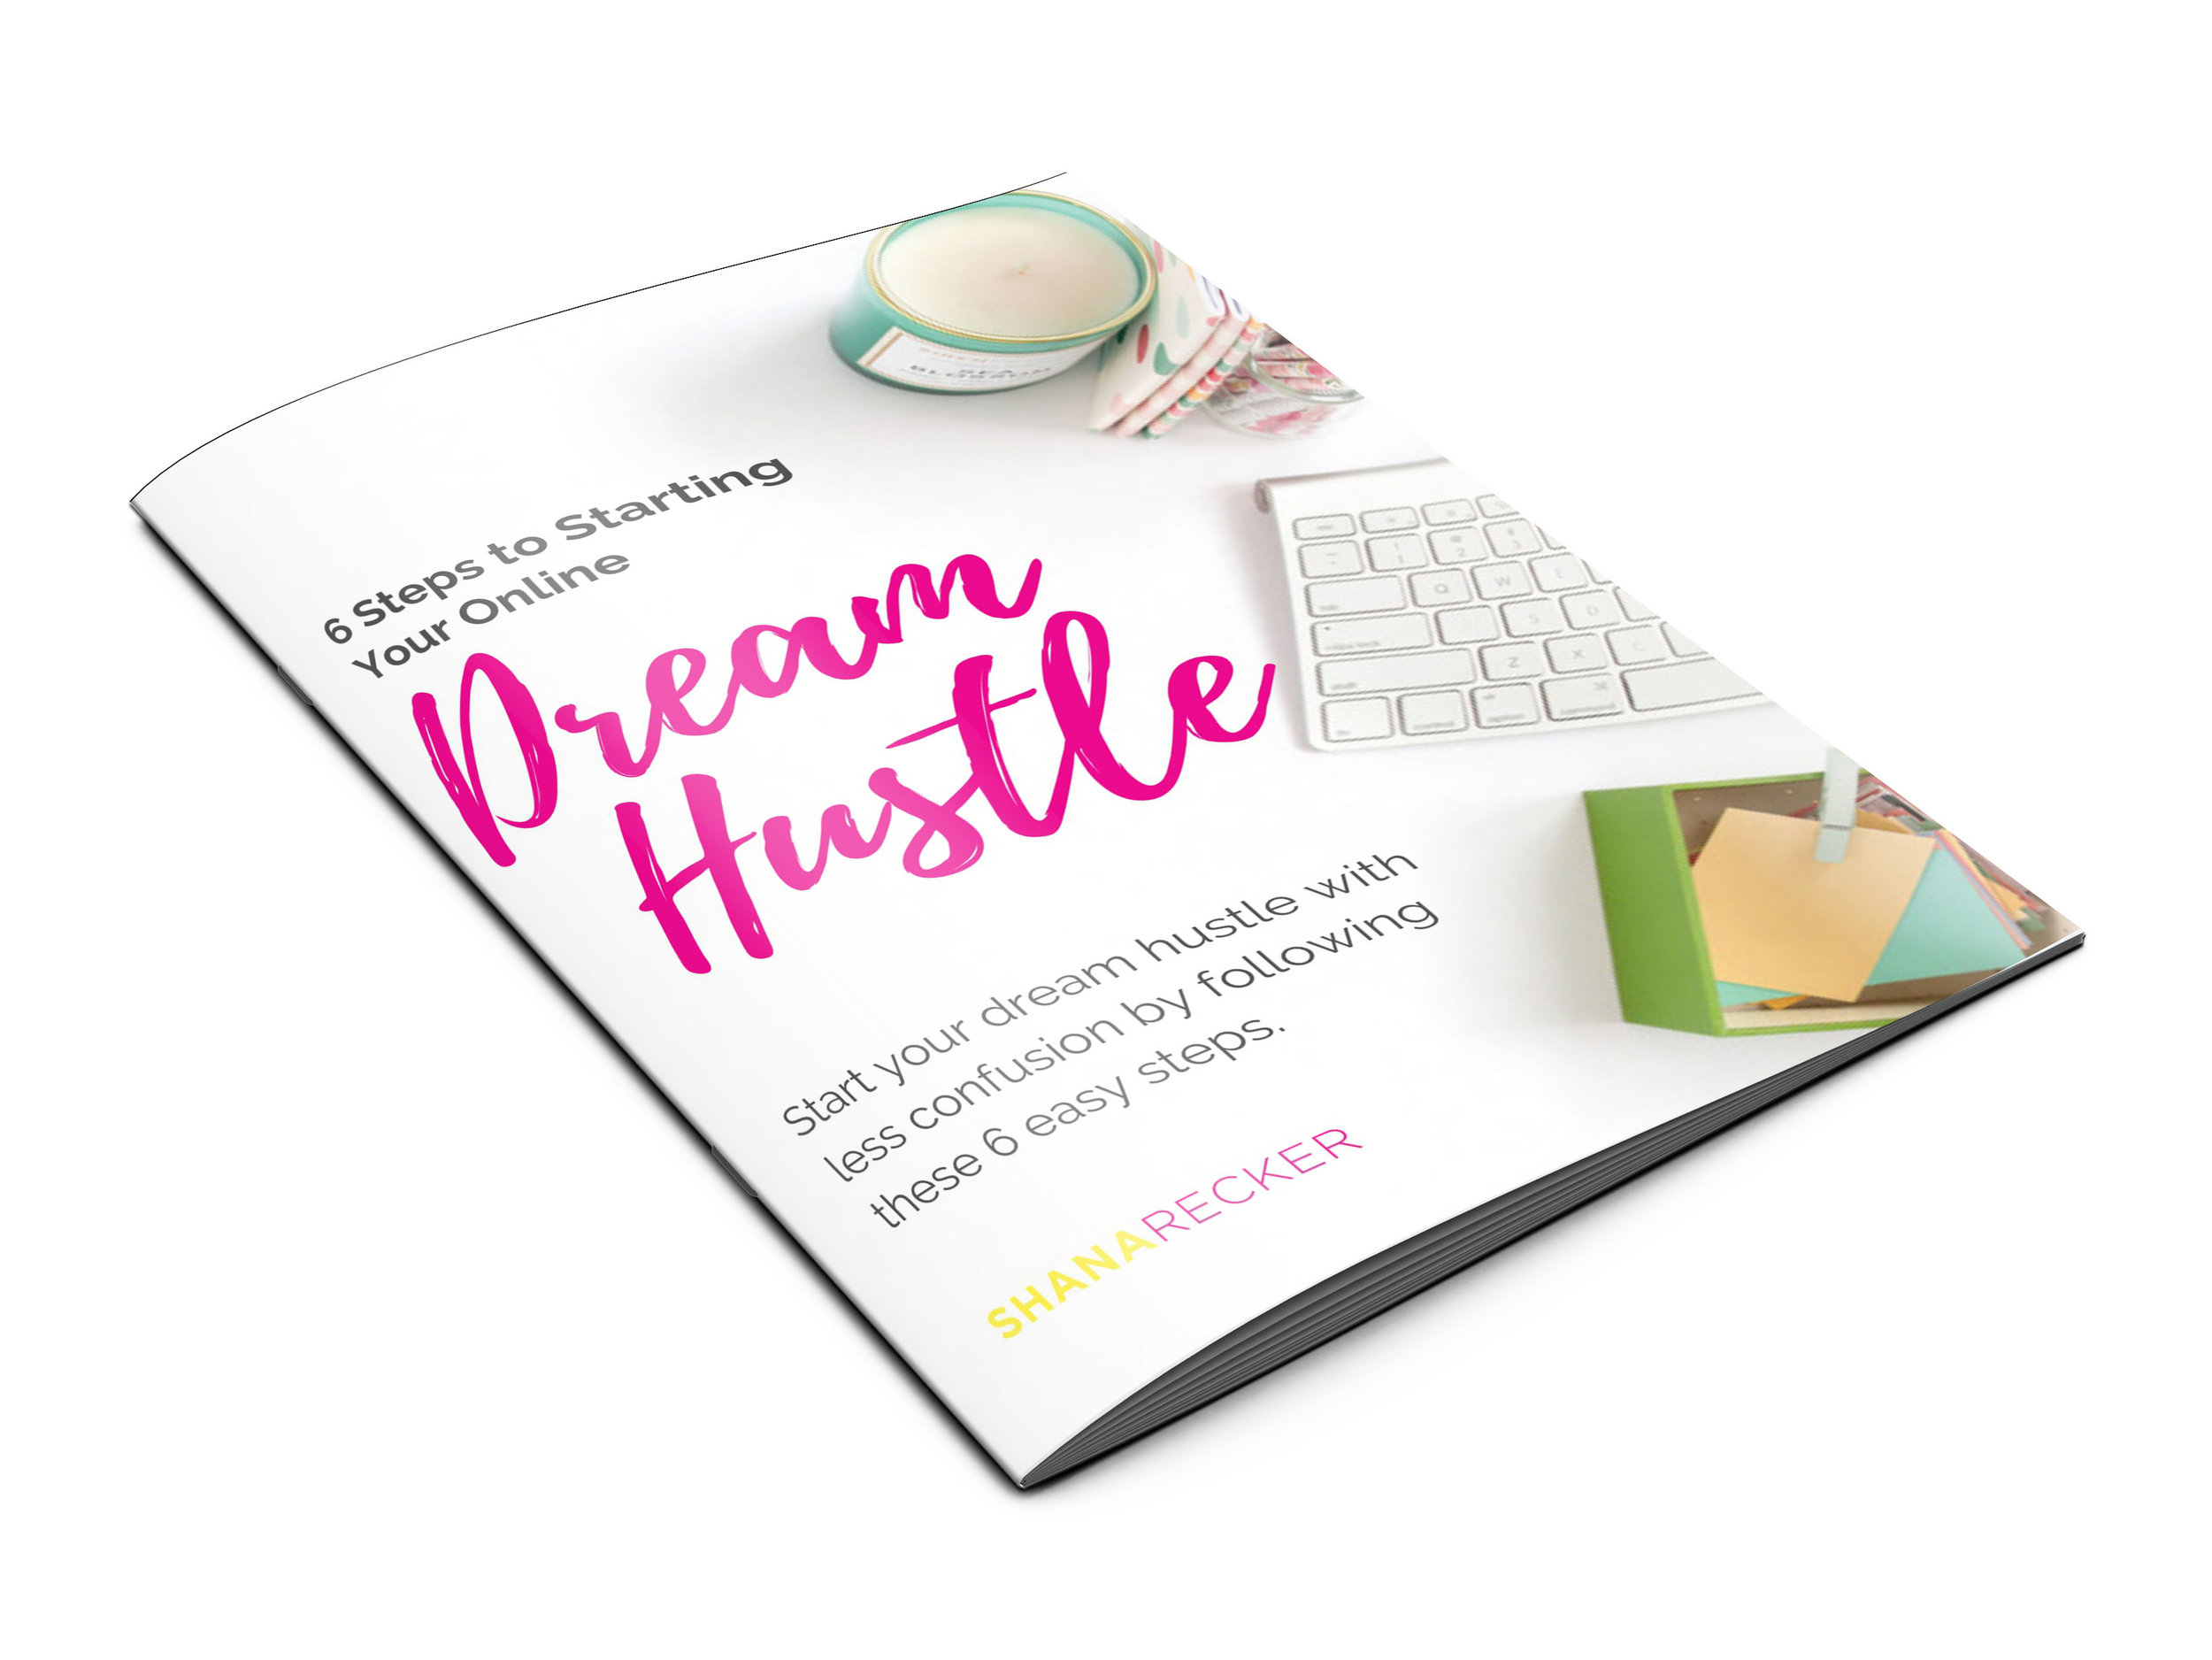 How to start your dream hustle online - This free guide takes the confusion and frustration out of starting your business online.